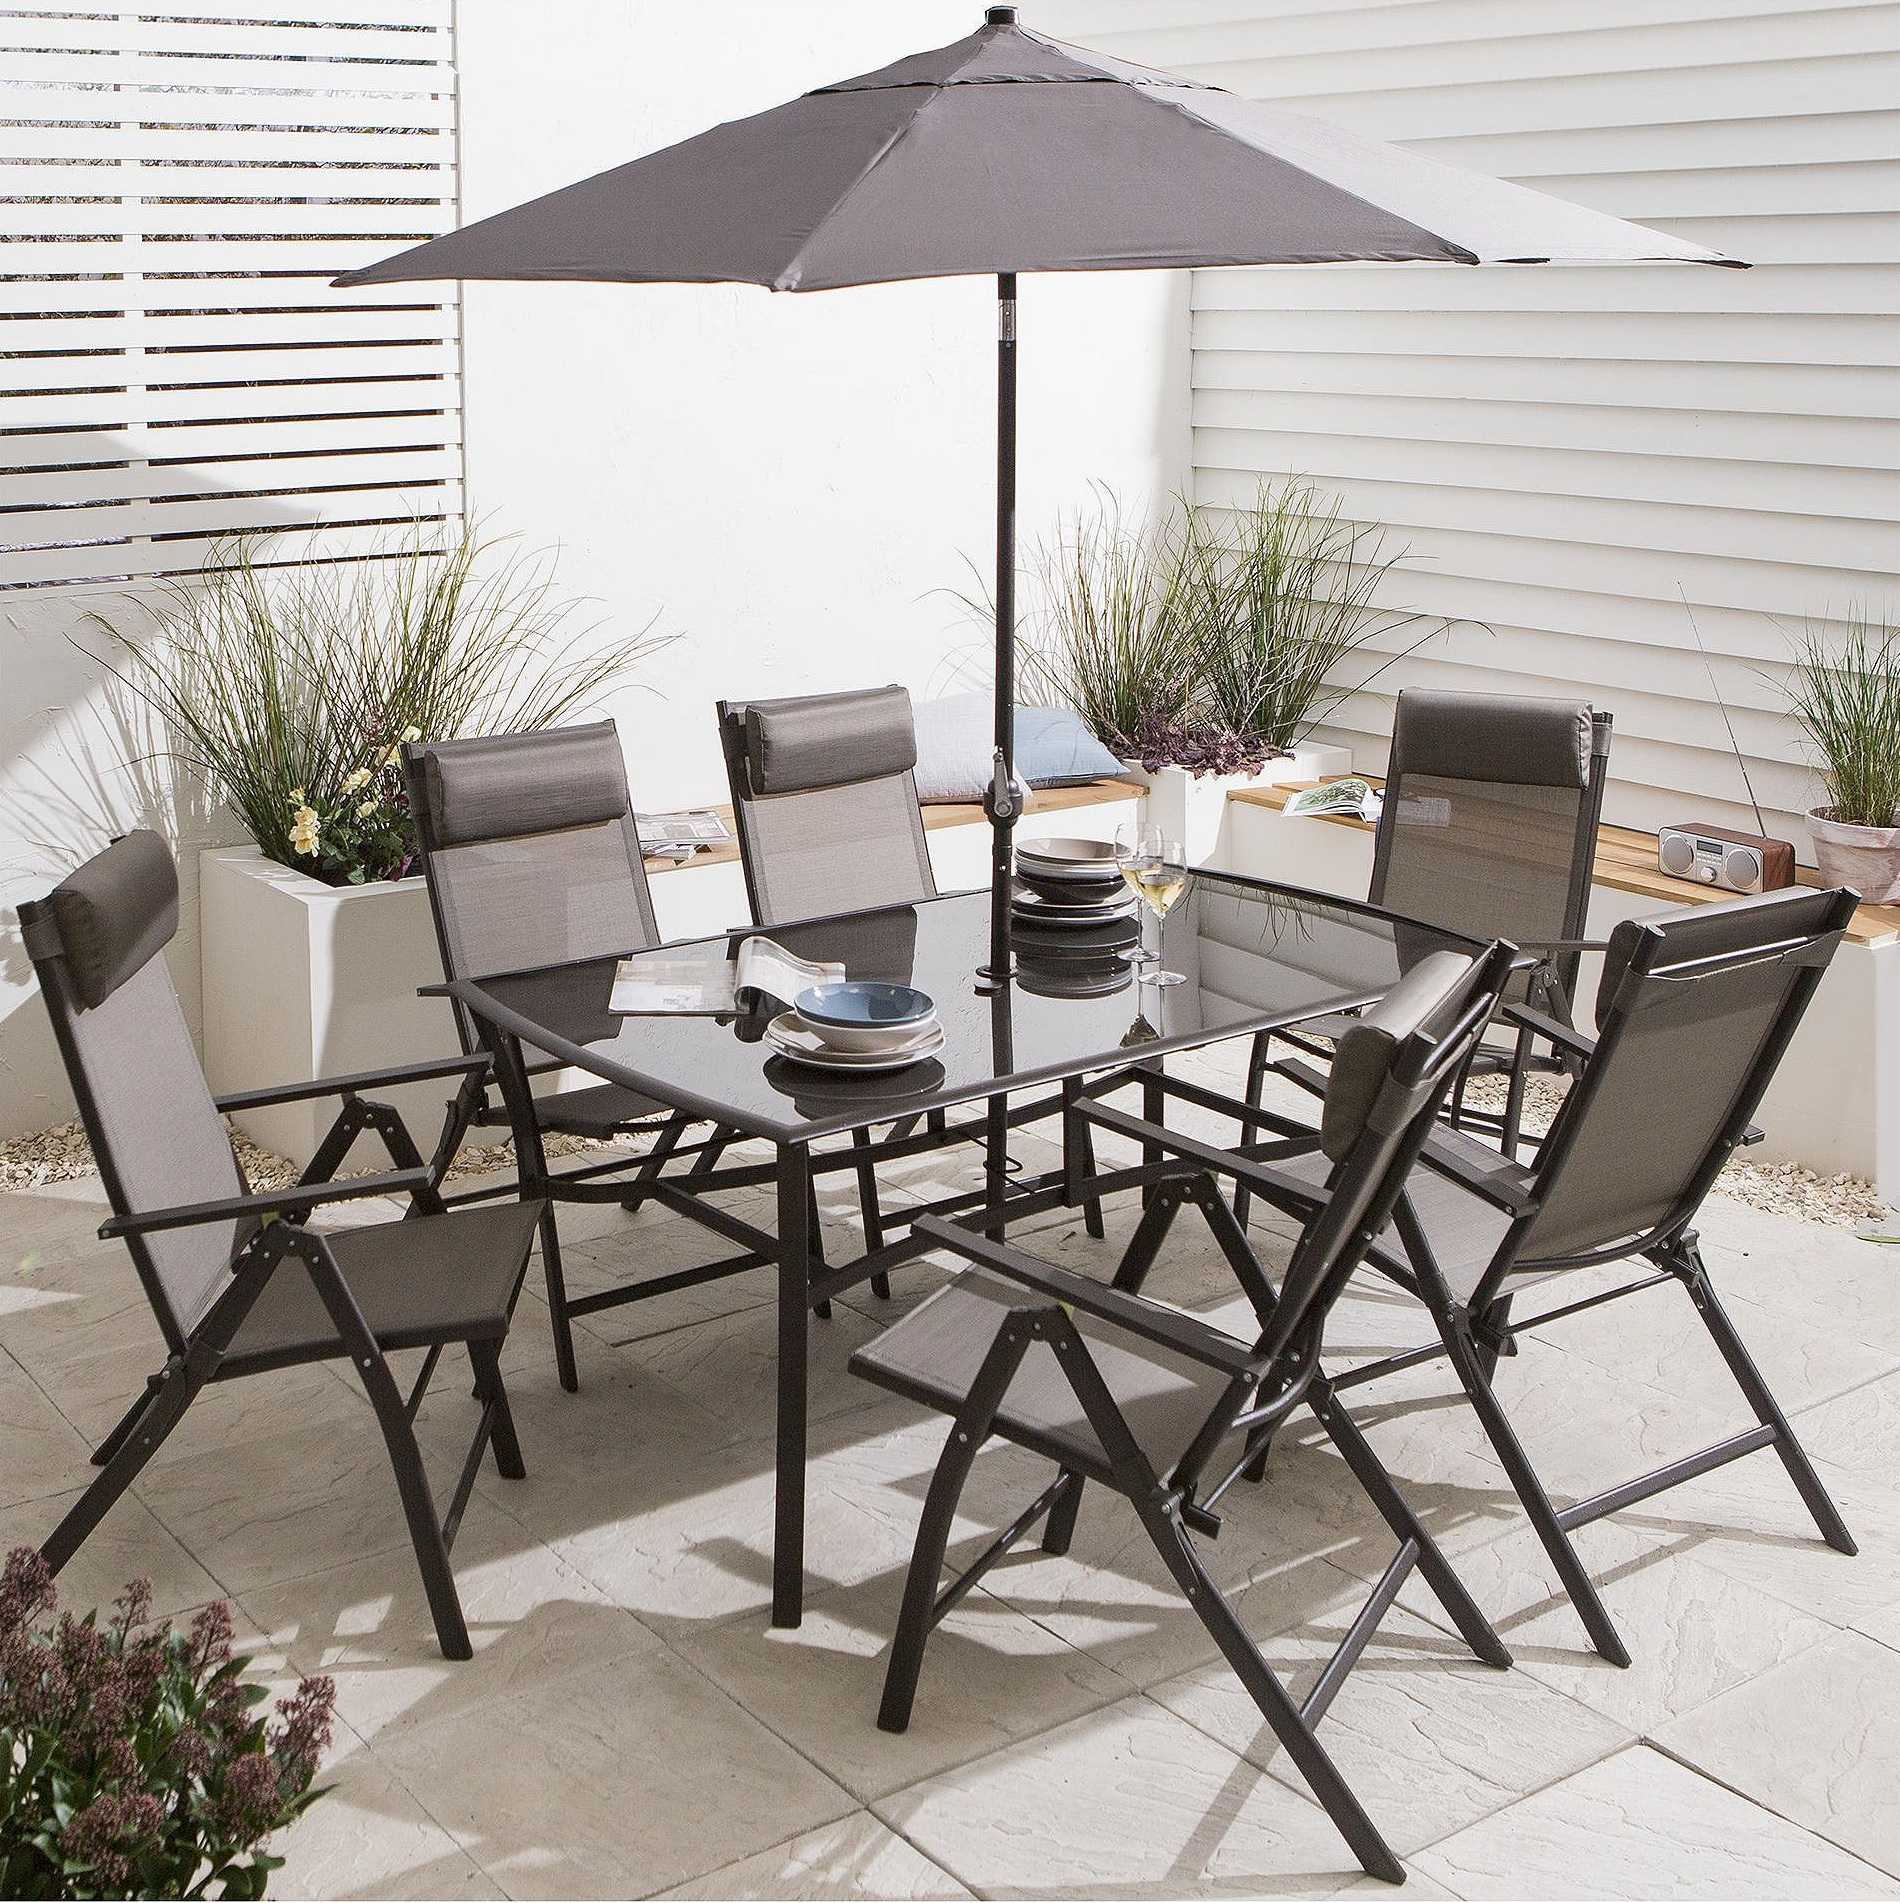 New Roma 8 Piece Metal Garden Furniture Set Table Parasol 6 Chairs Brown